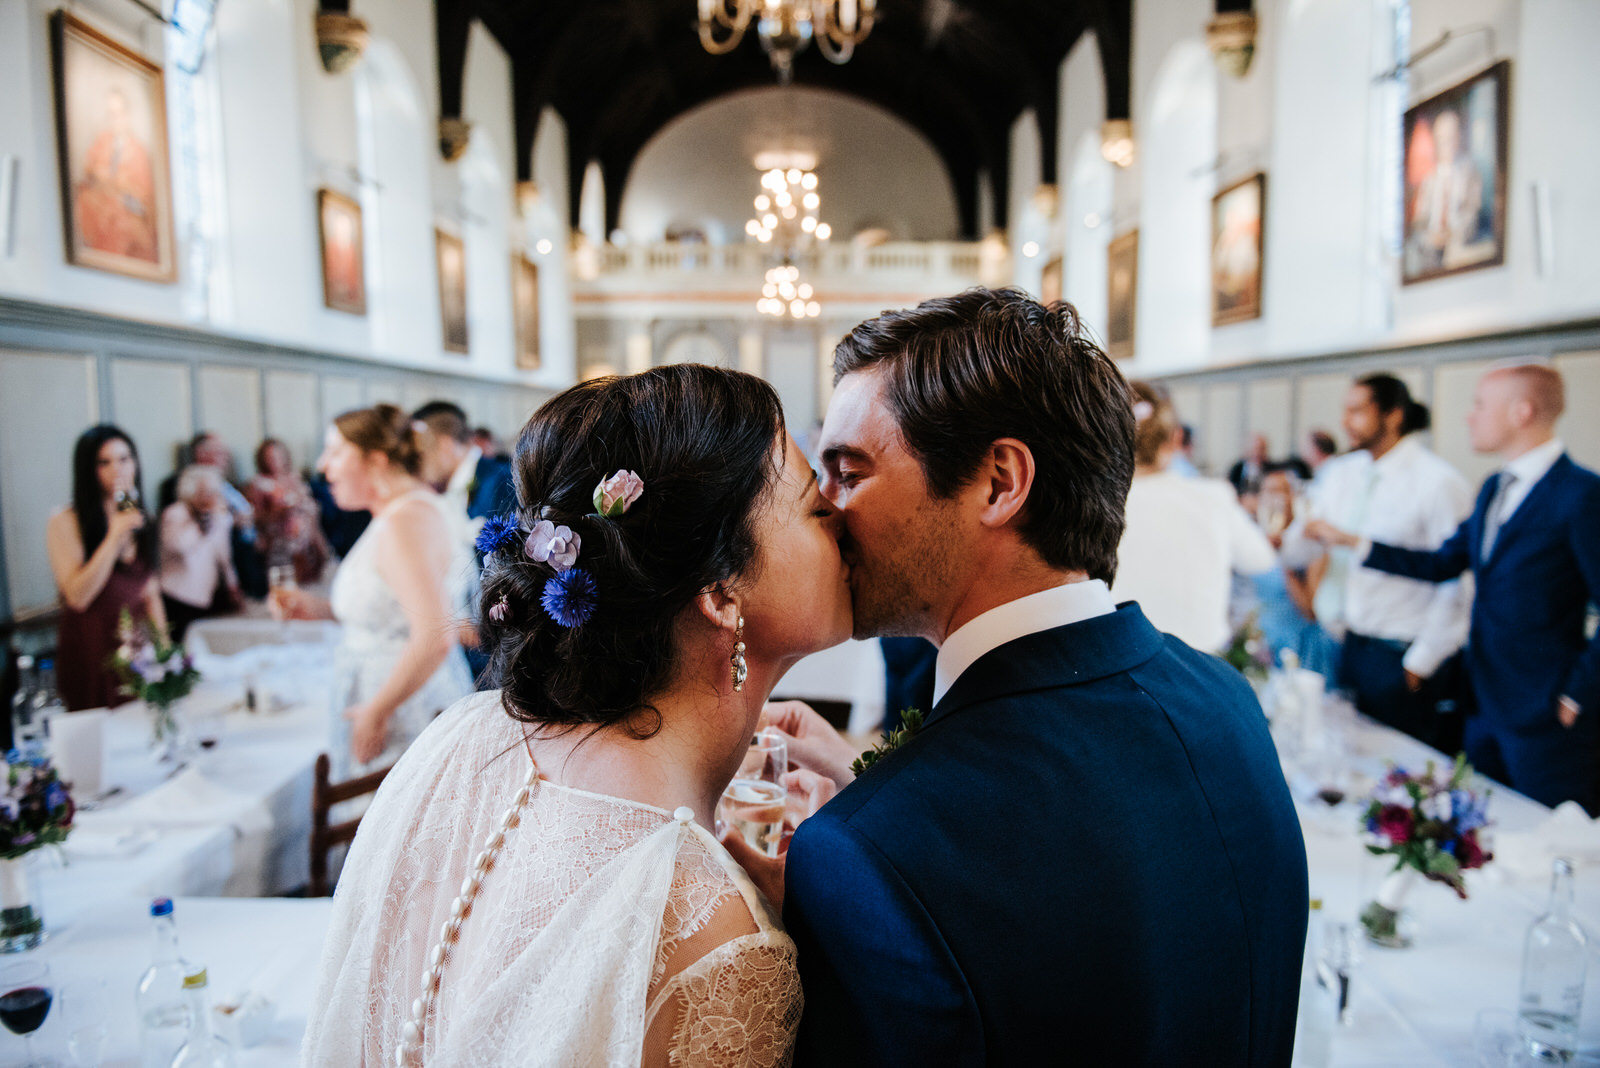 Bride and groom kiss after wedding speeches